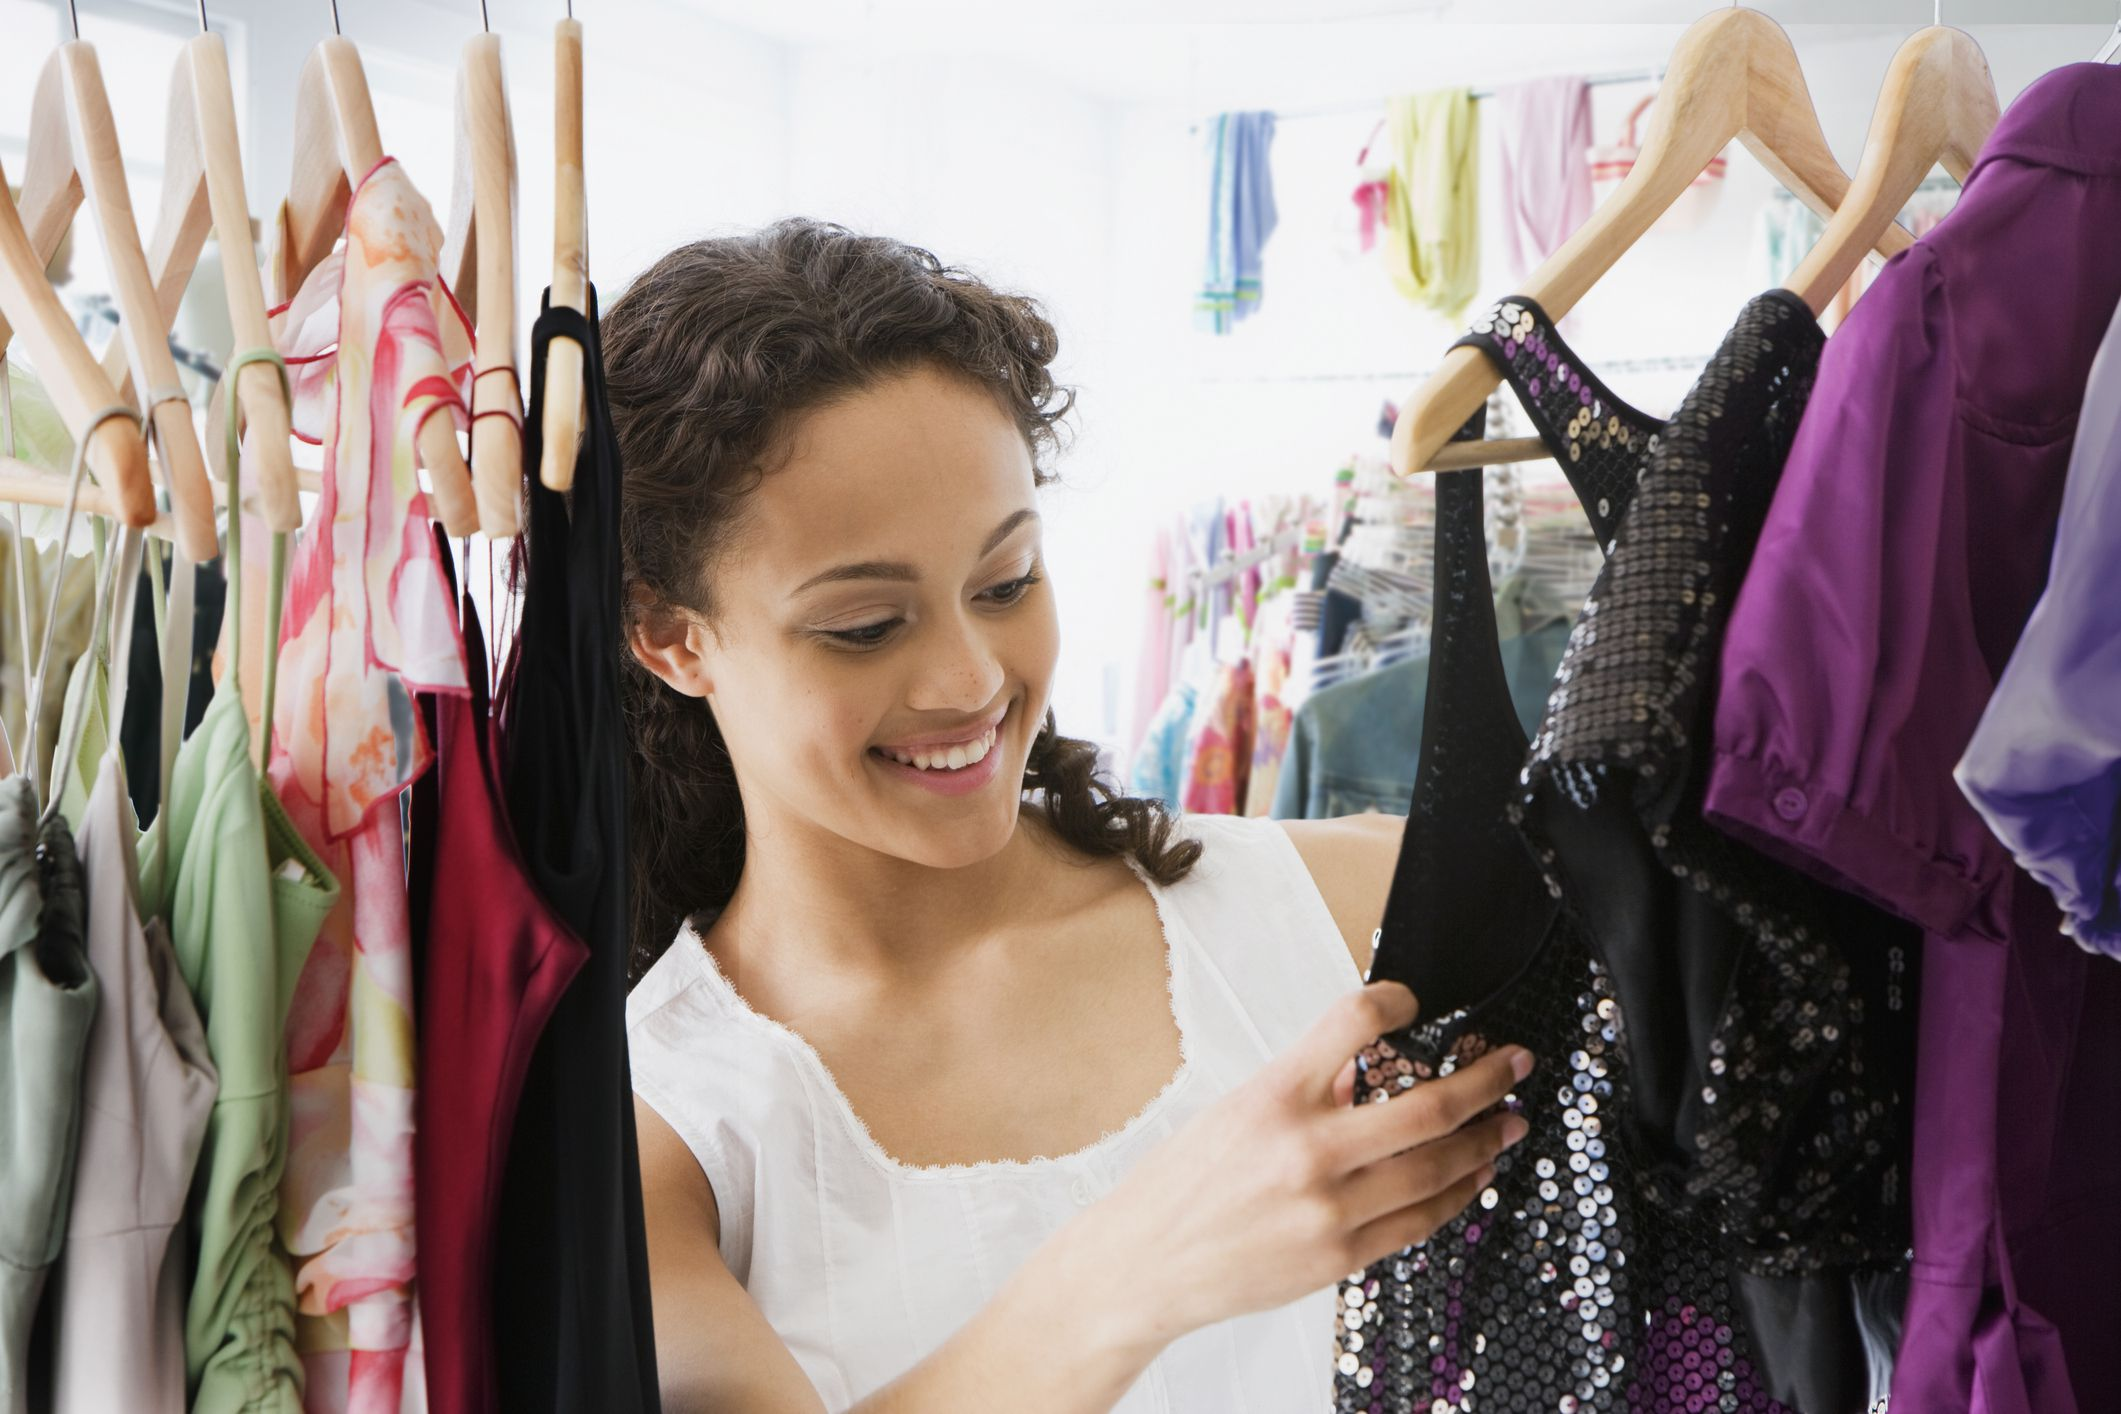 7 Styles of Hangers and Their Use in Retail Stores